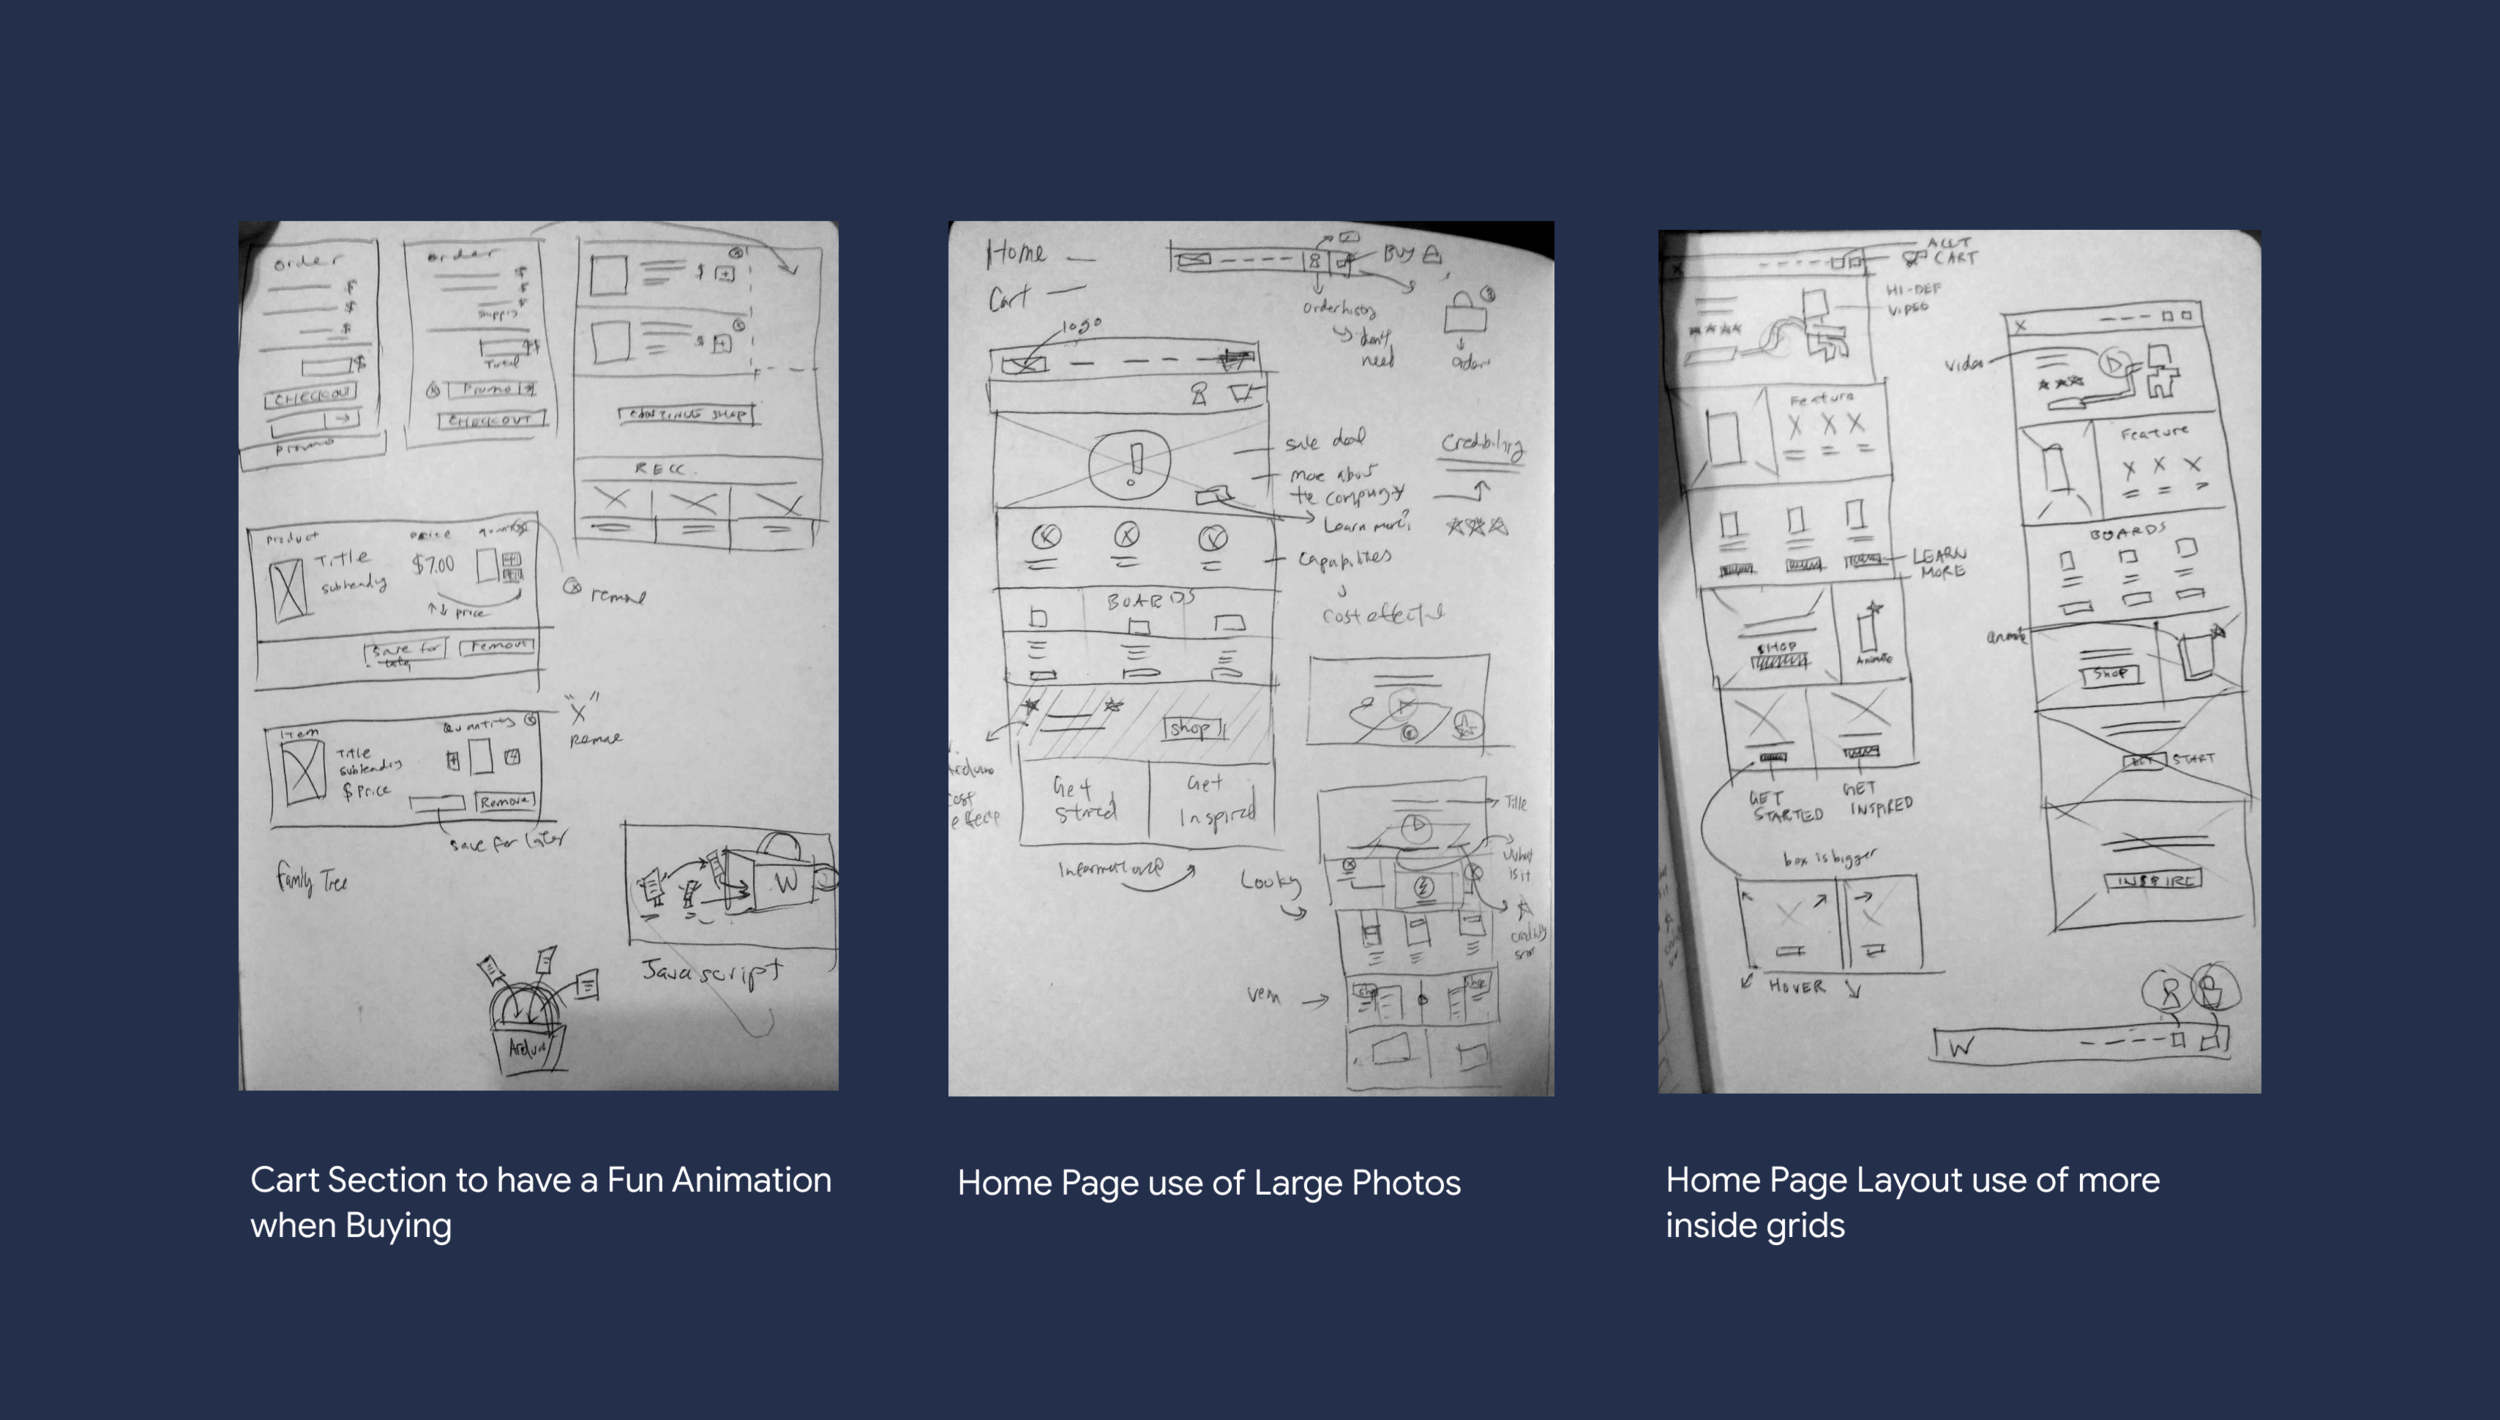 Brainstorming sketches for home page, cart. and overall feel